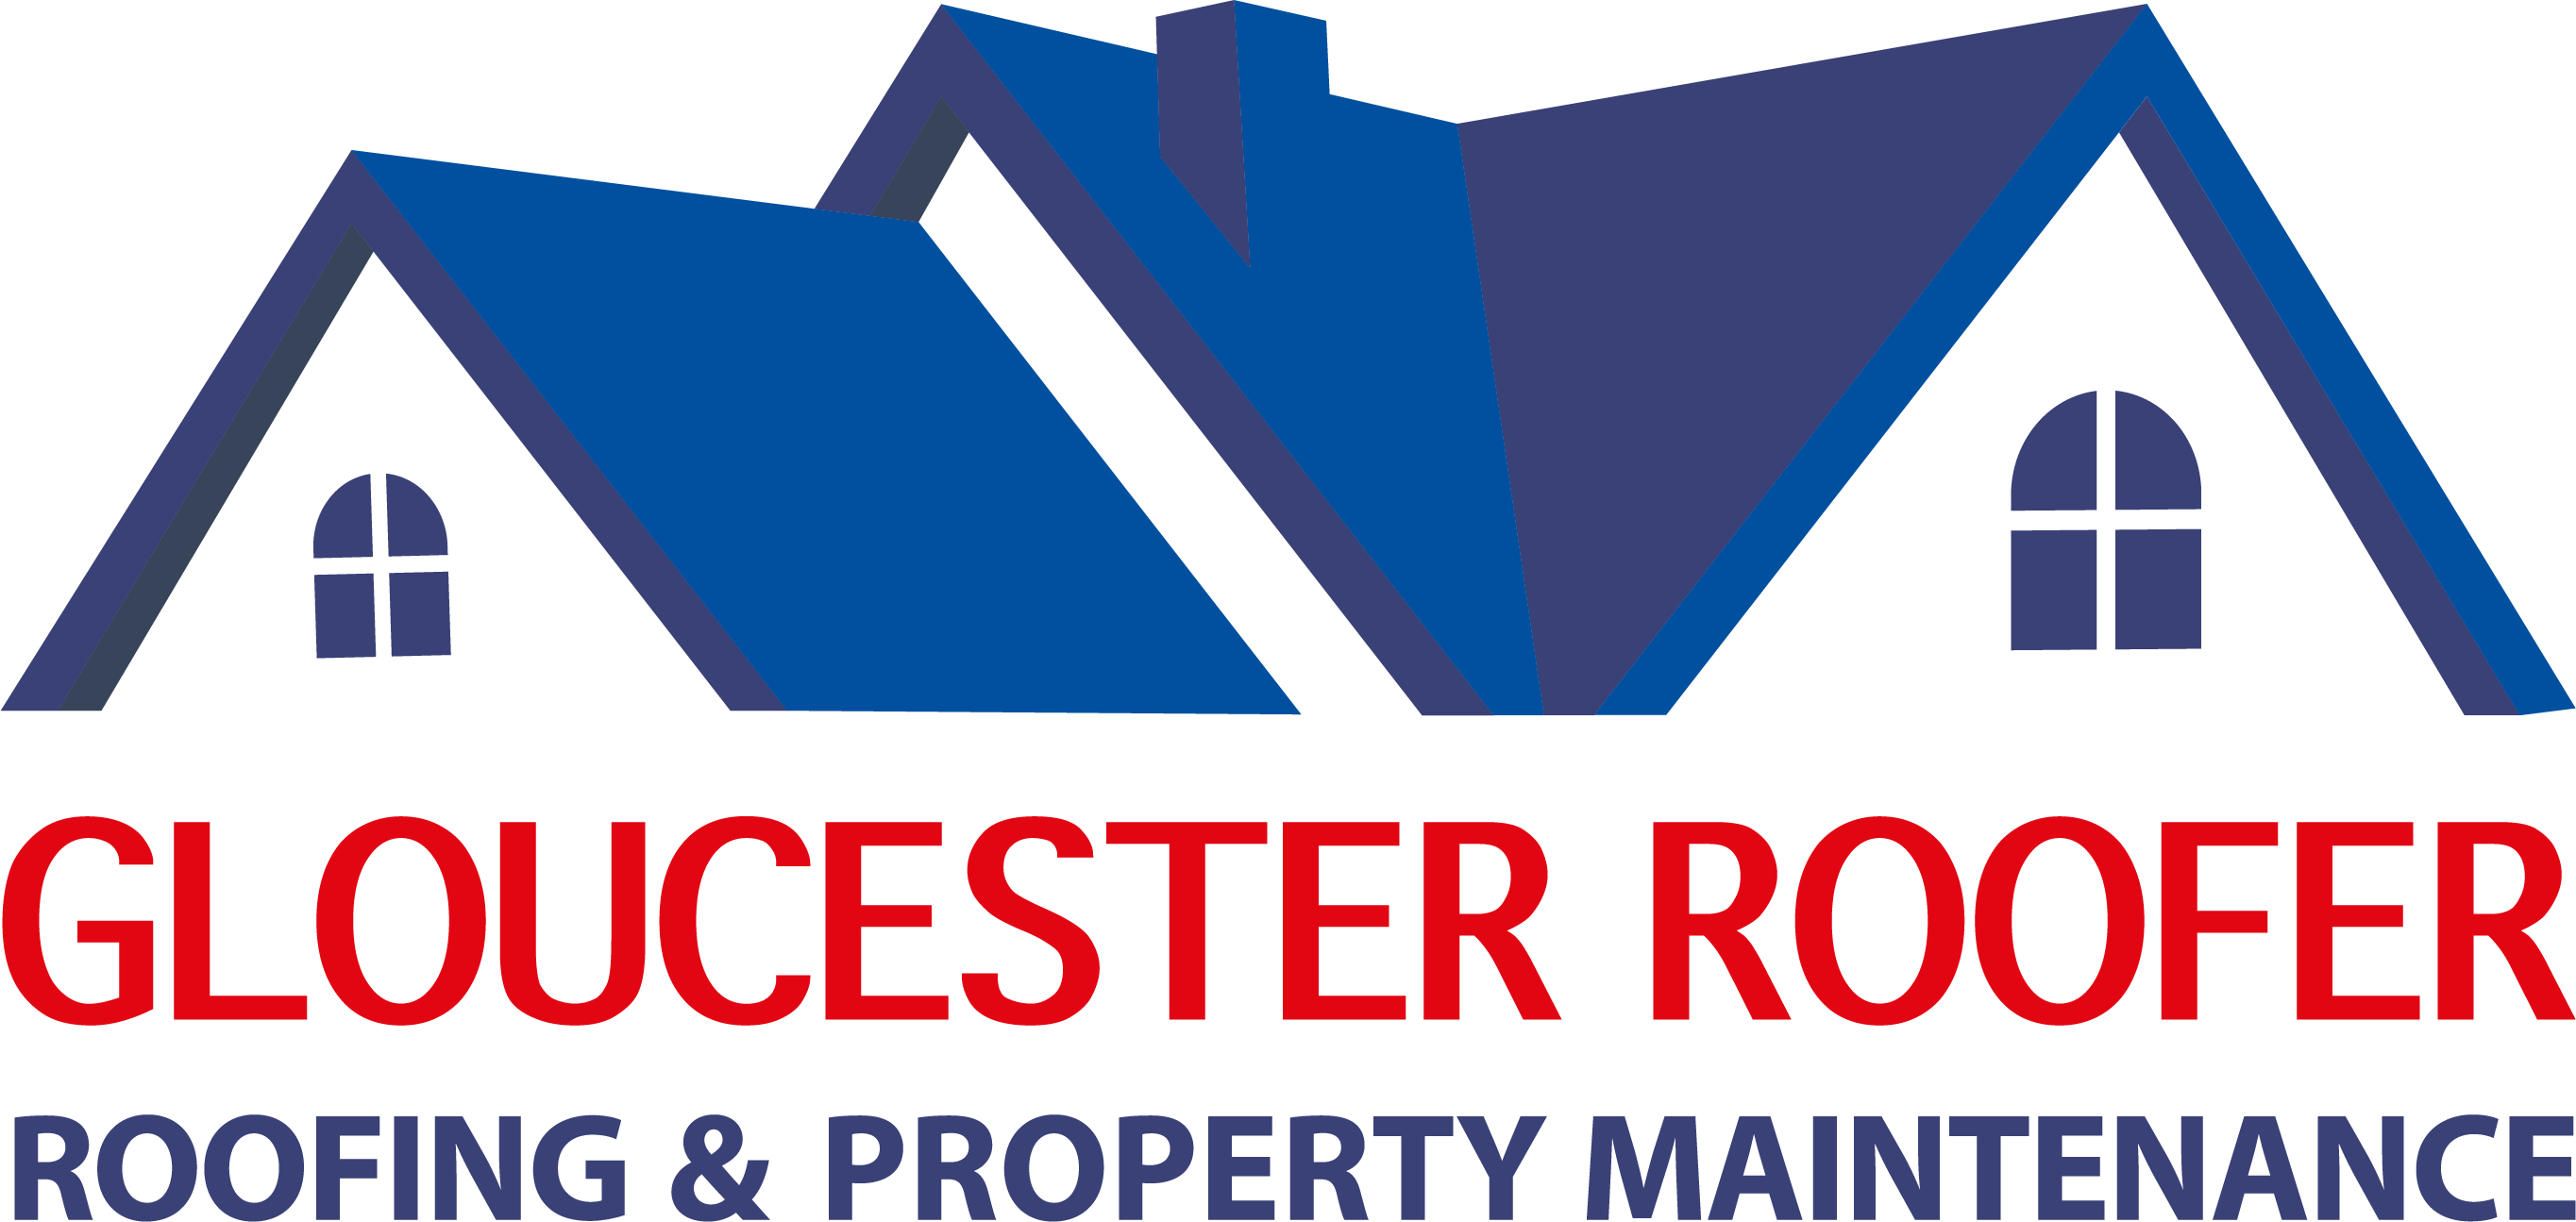 Gloucester Roofer | Roofing & Property Maintenance